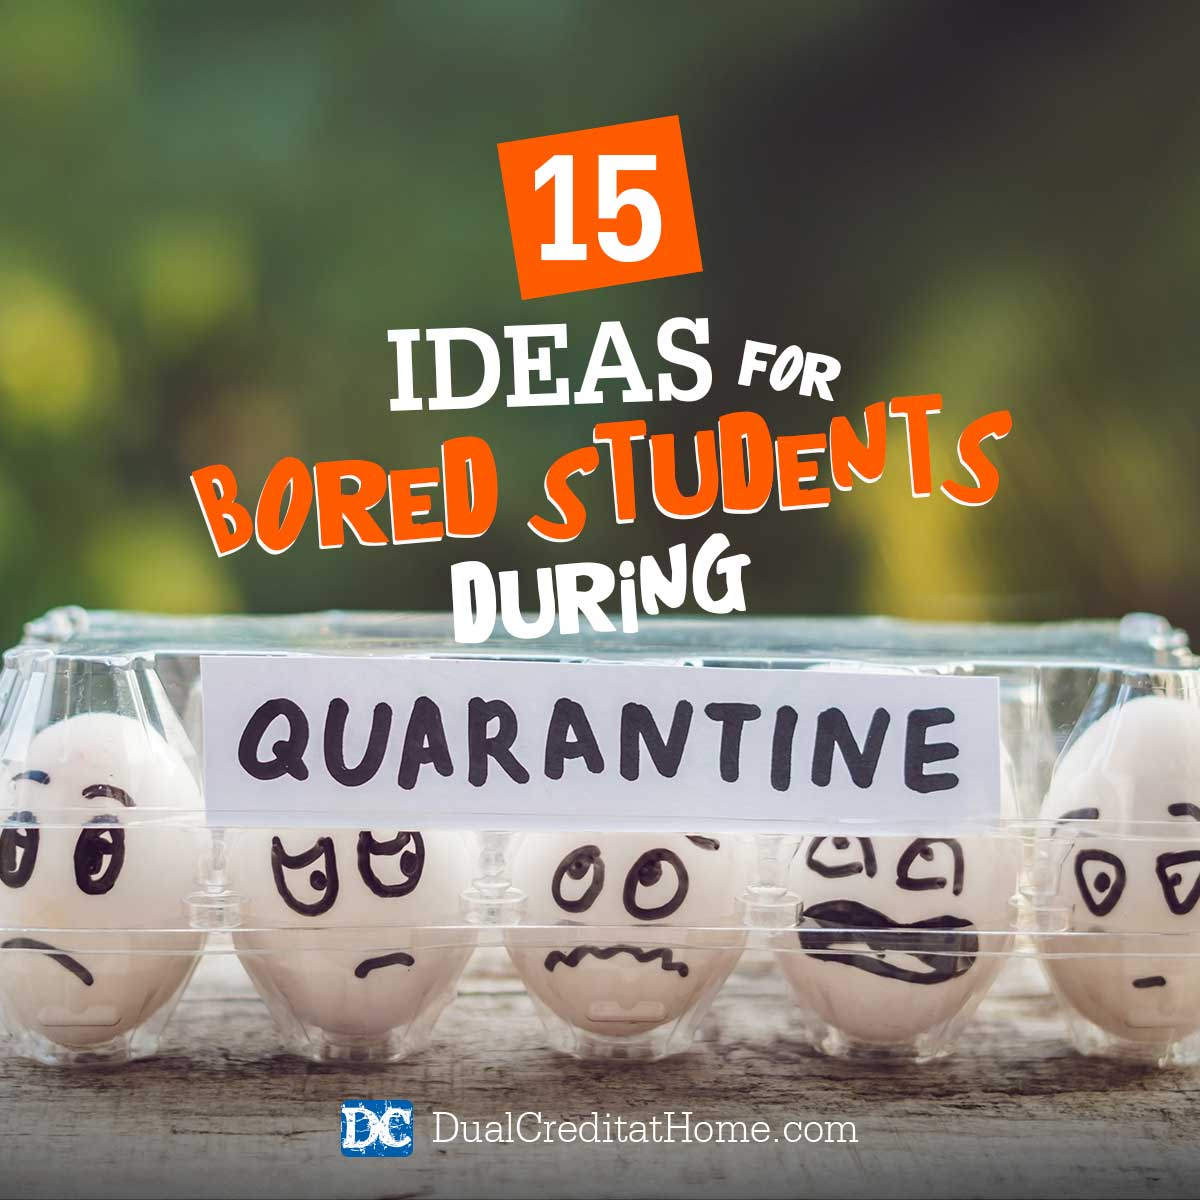 15 Ideas for Bored Students During Quarantine